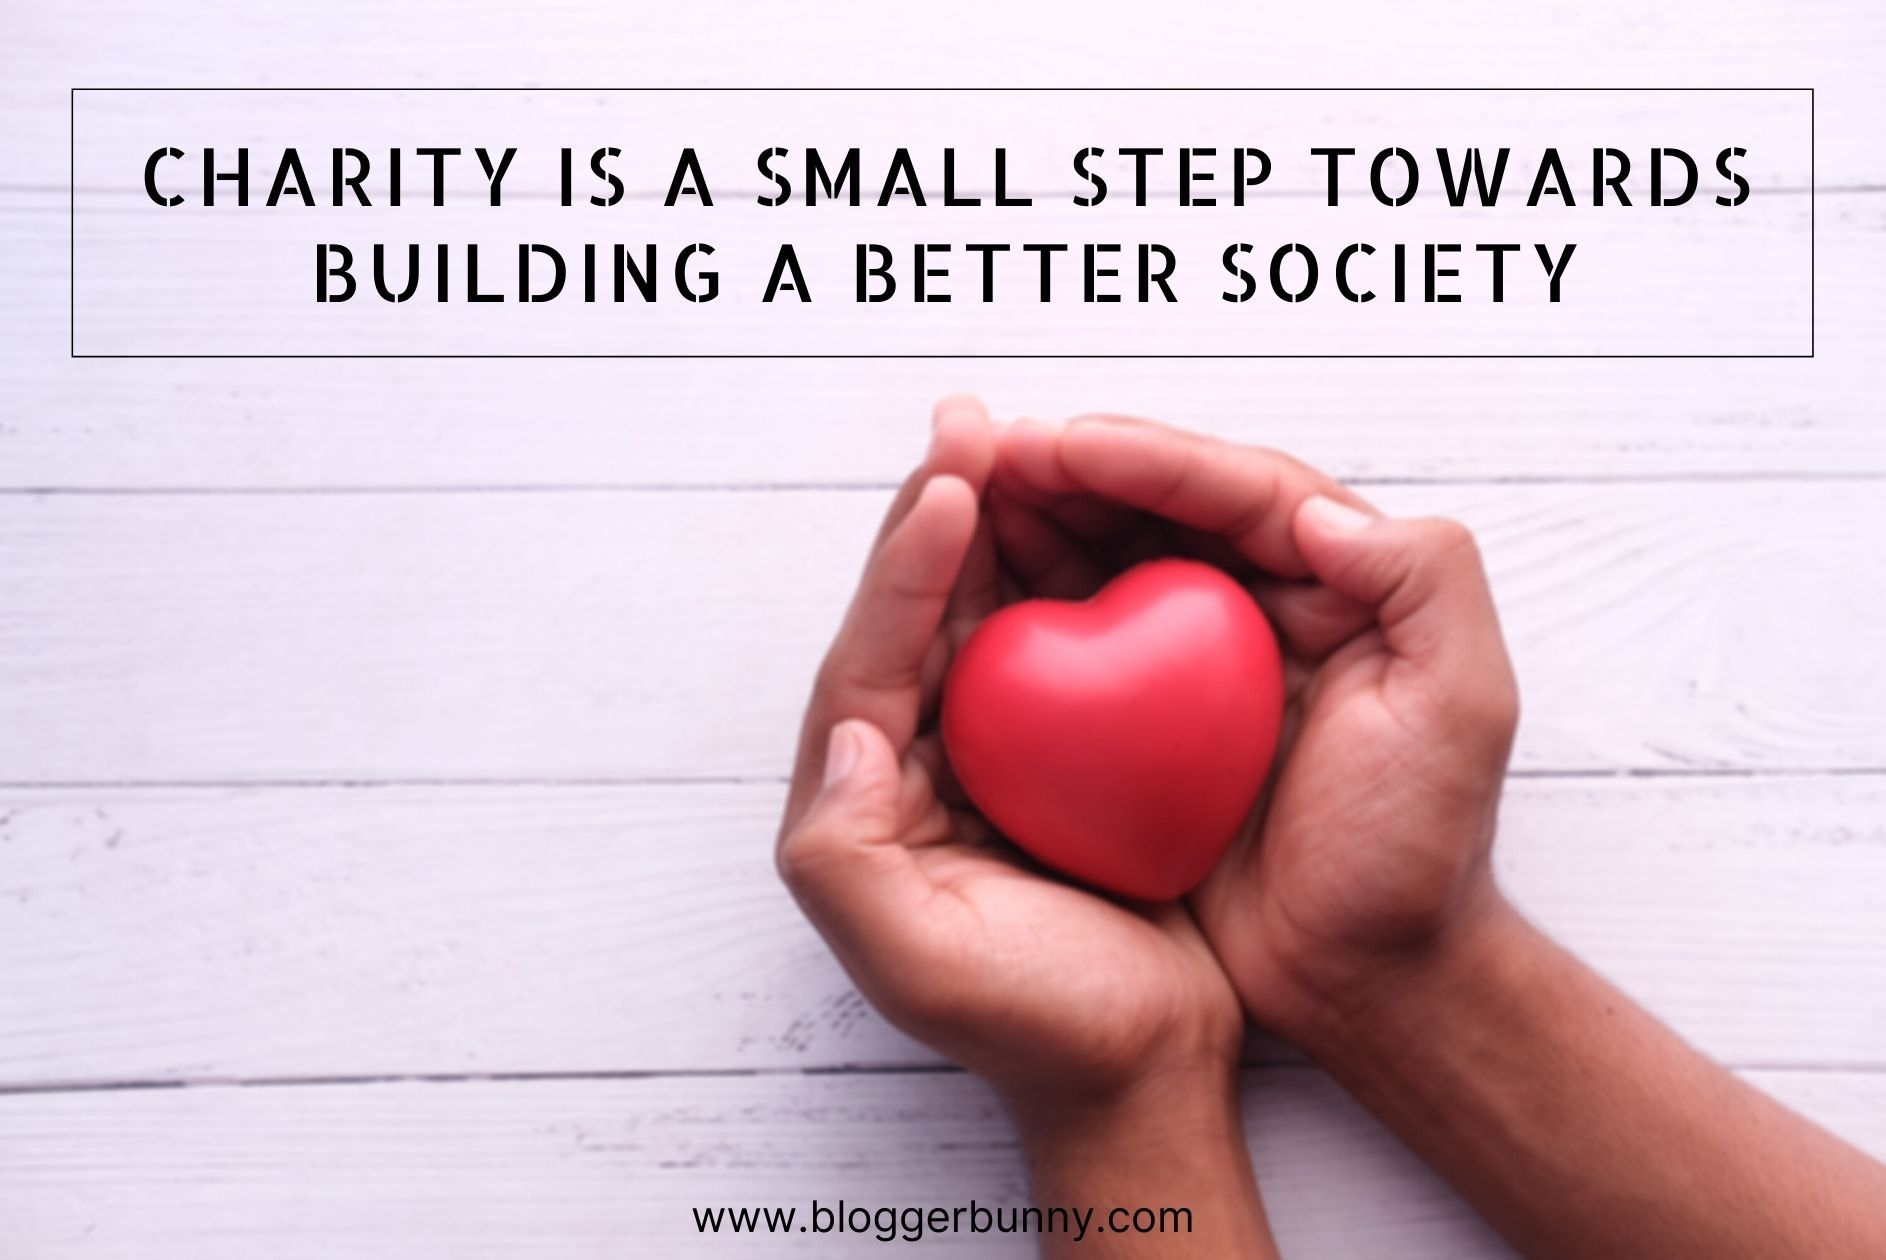 Charity is a small step towards building a better society